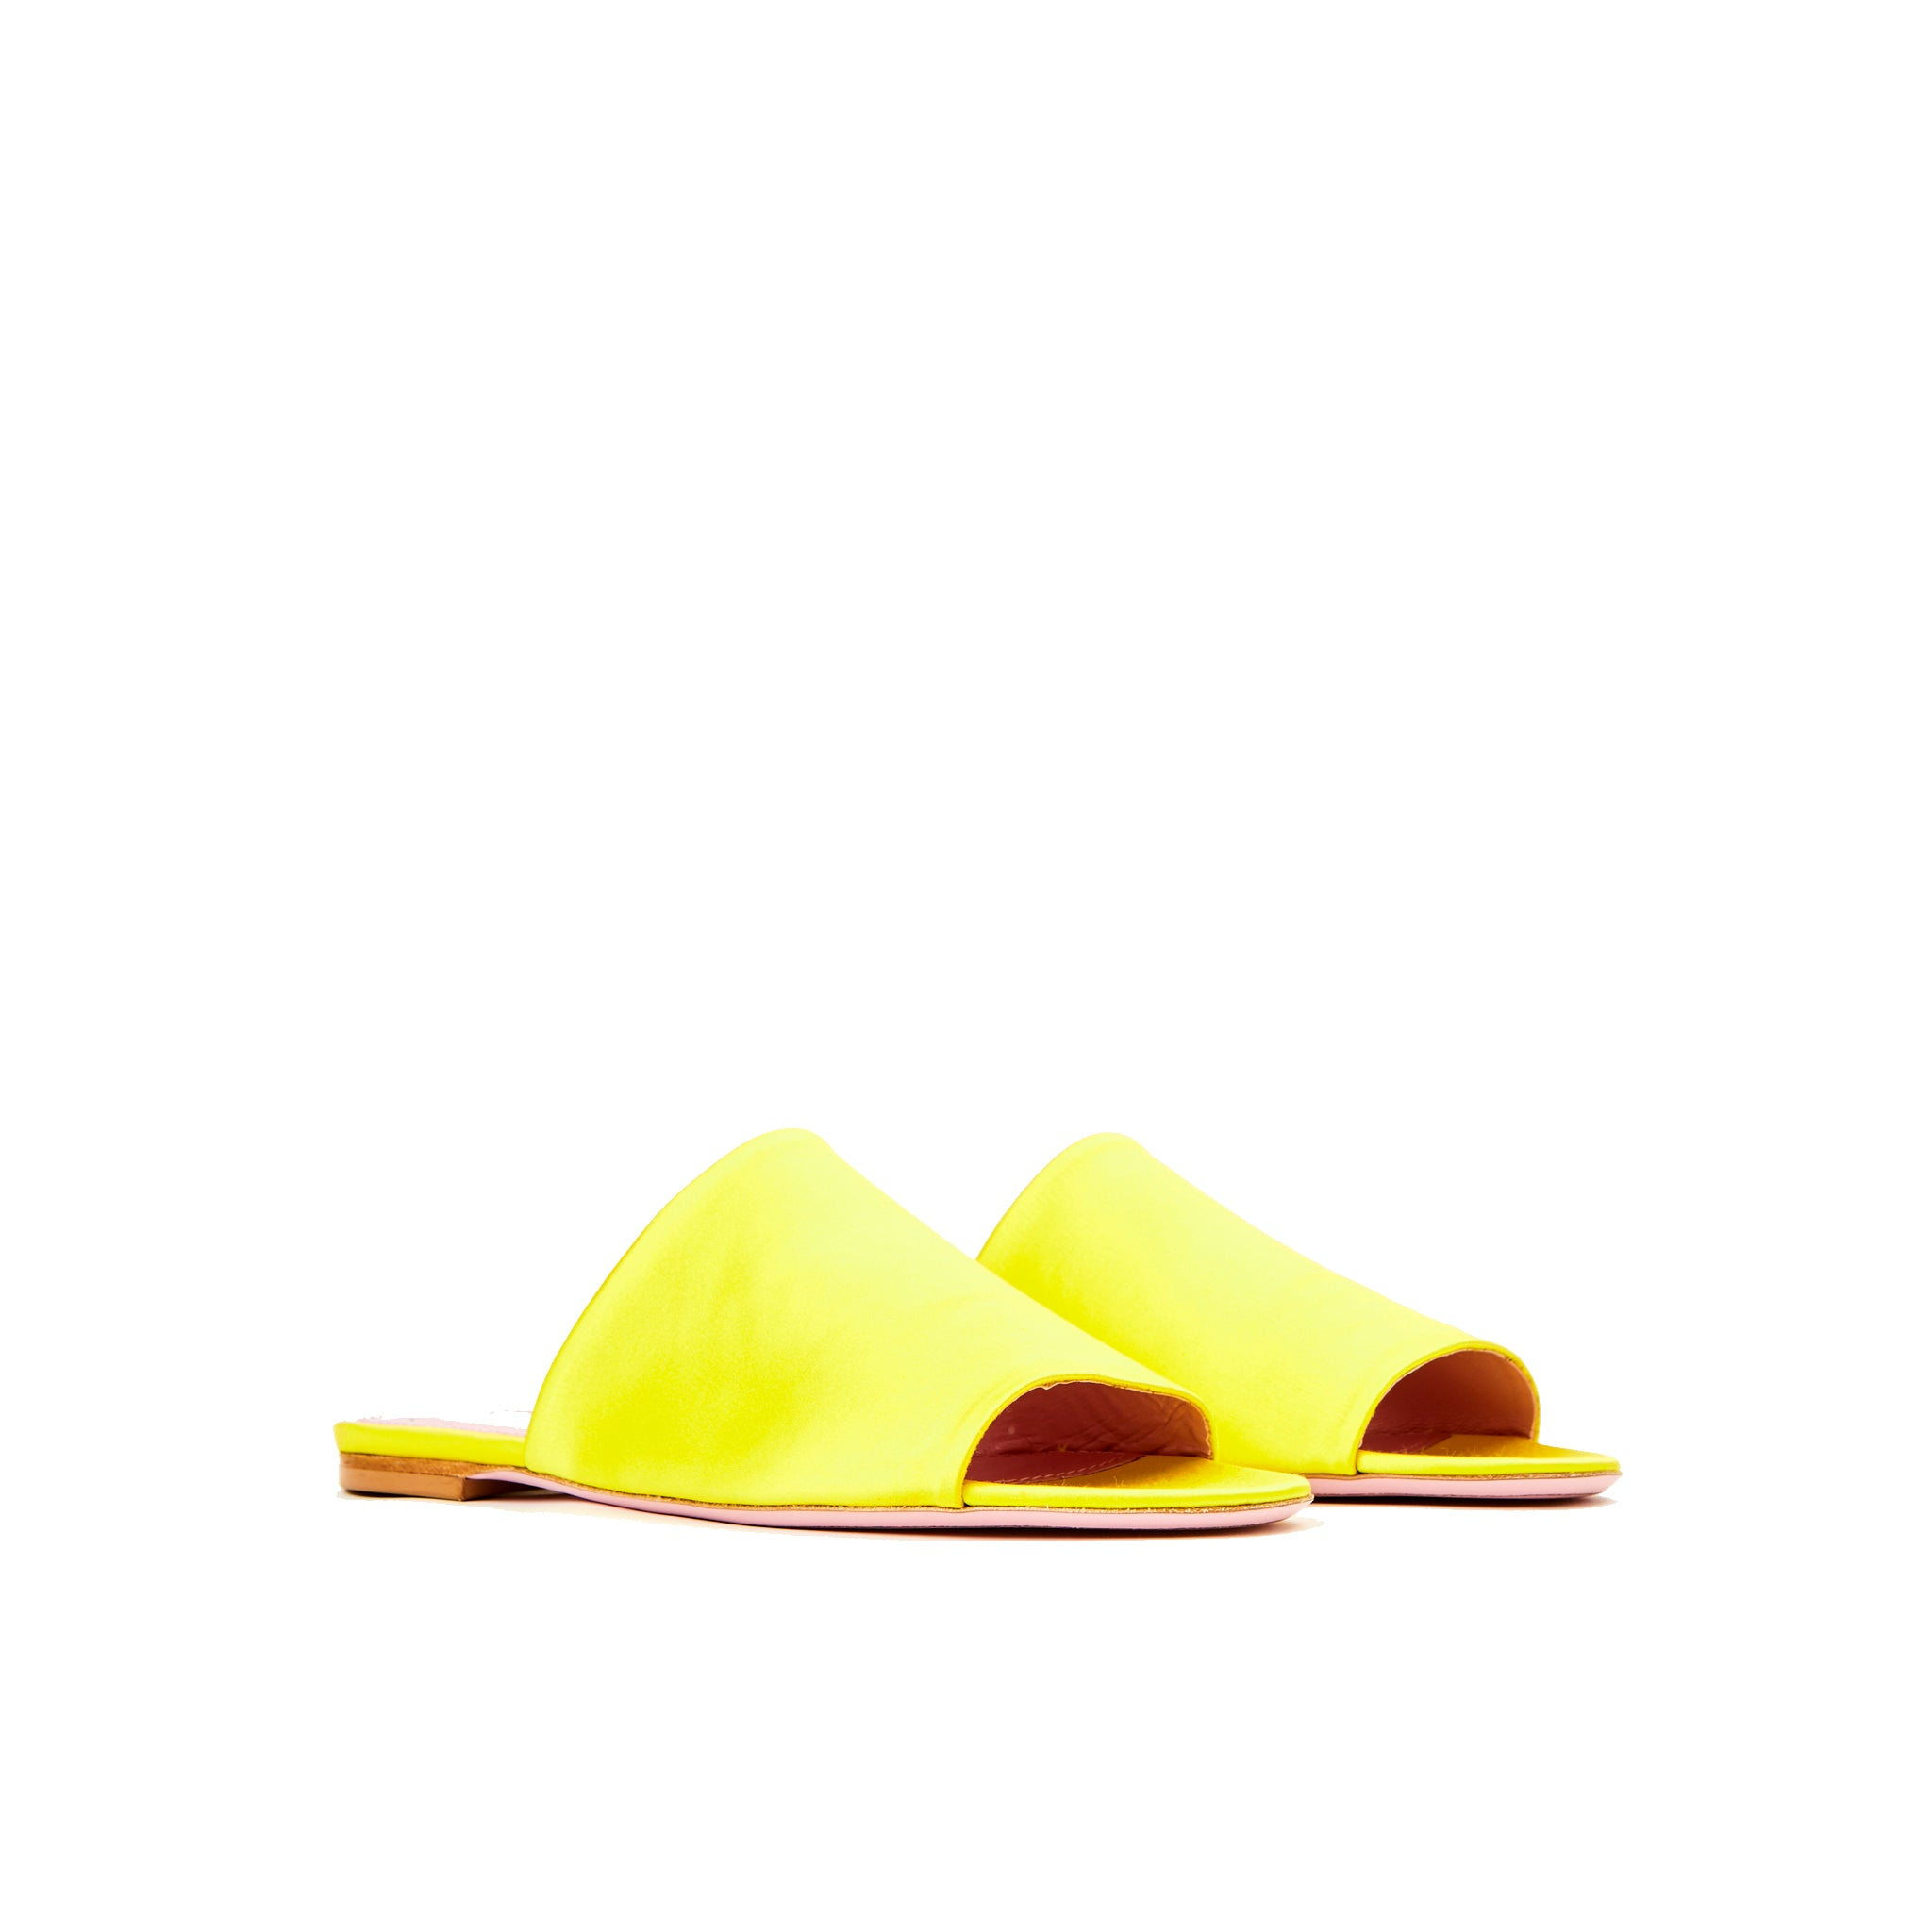 Phare seta slide in yellow silk satin 3/4 view